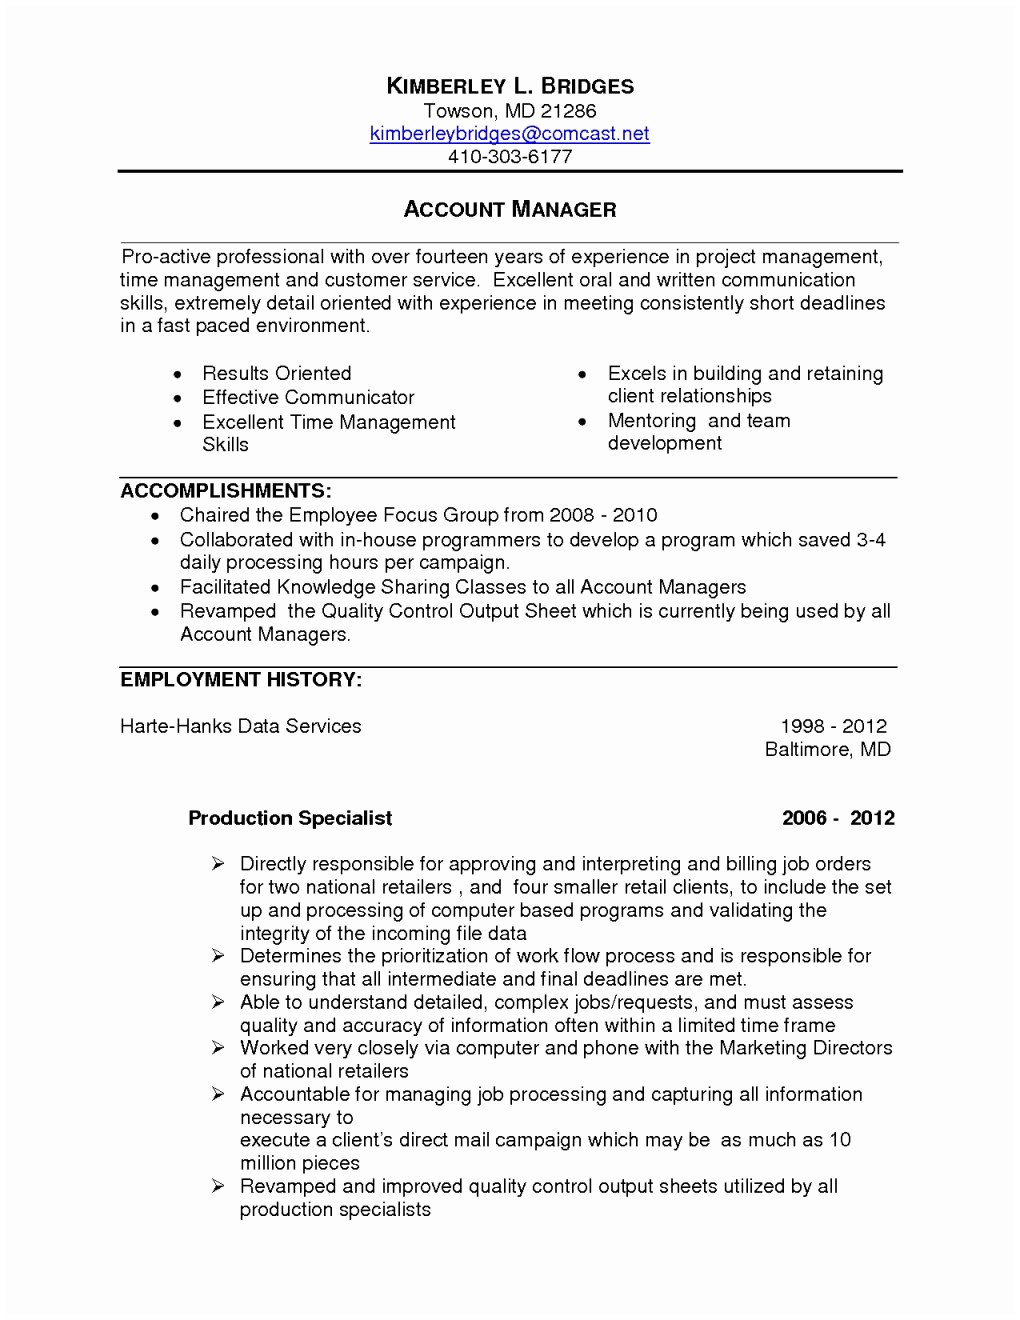 Customer Service Manager Resume Template - Customer Service Manager Resume Sample